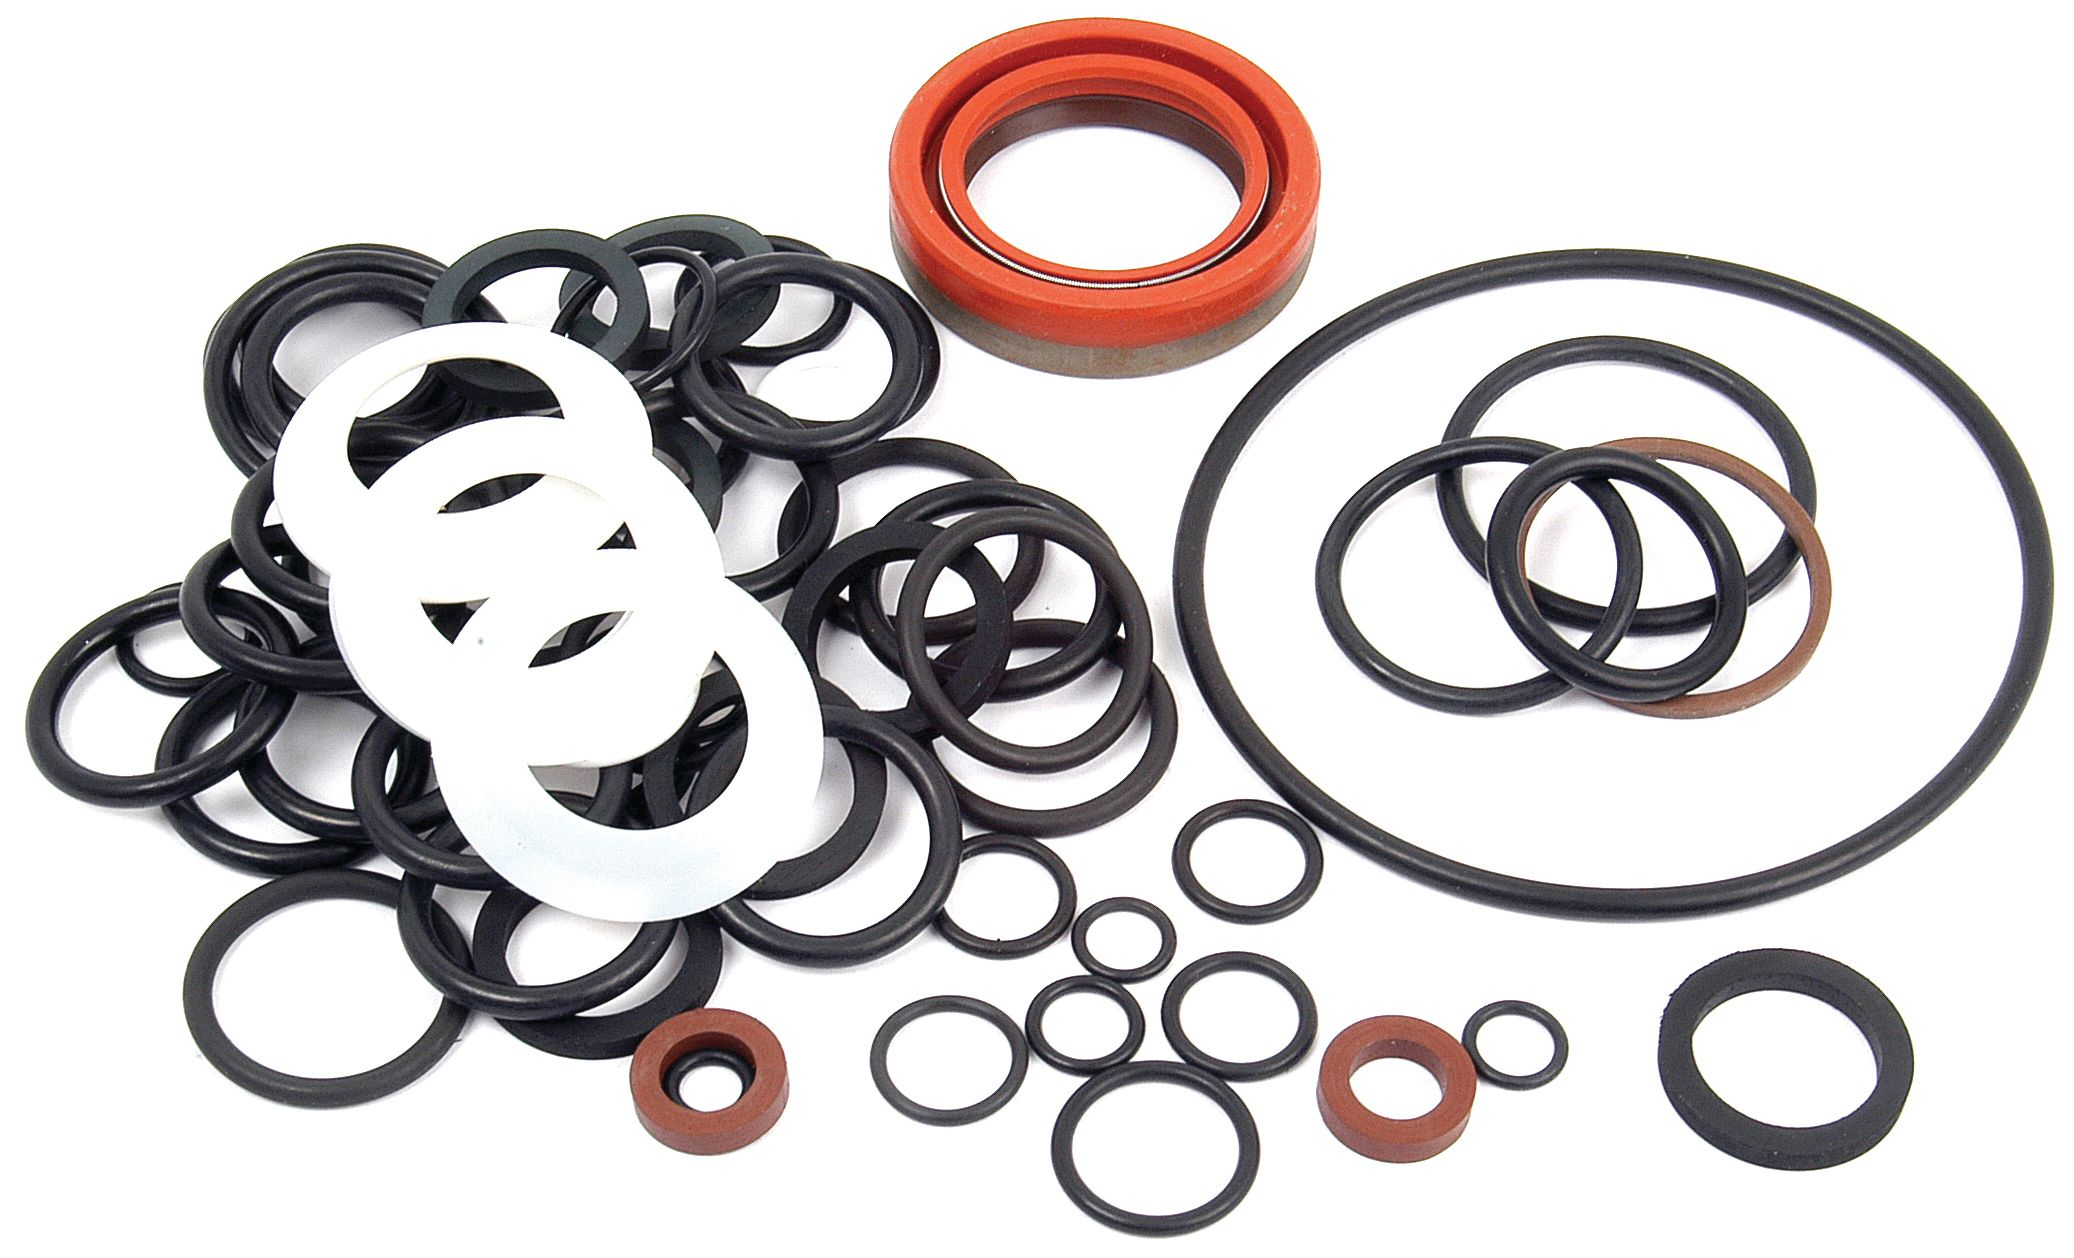 JOHN DEERE SEAL KIT 52766